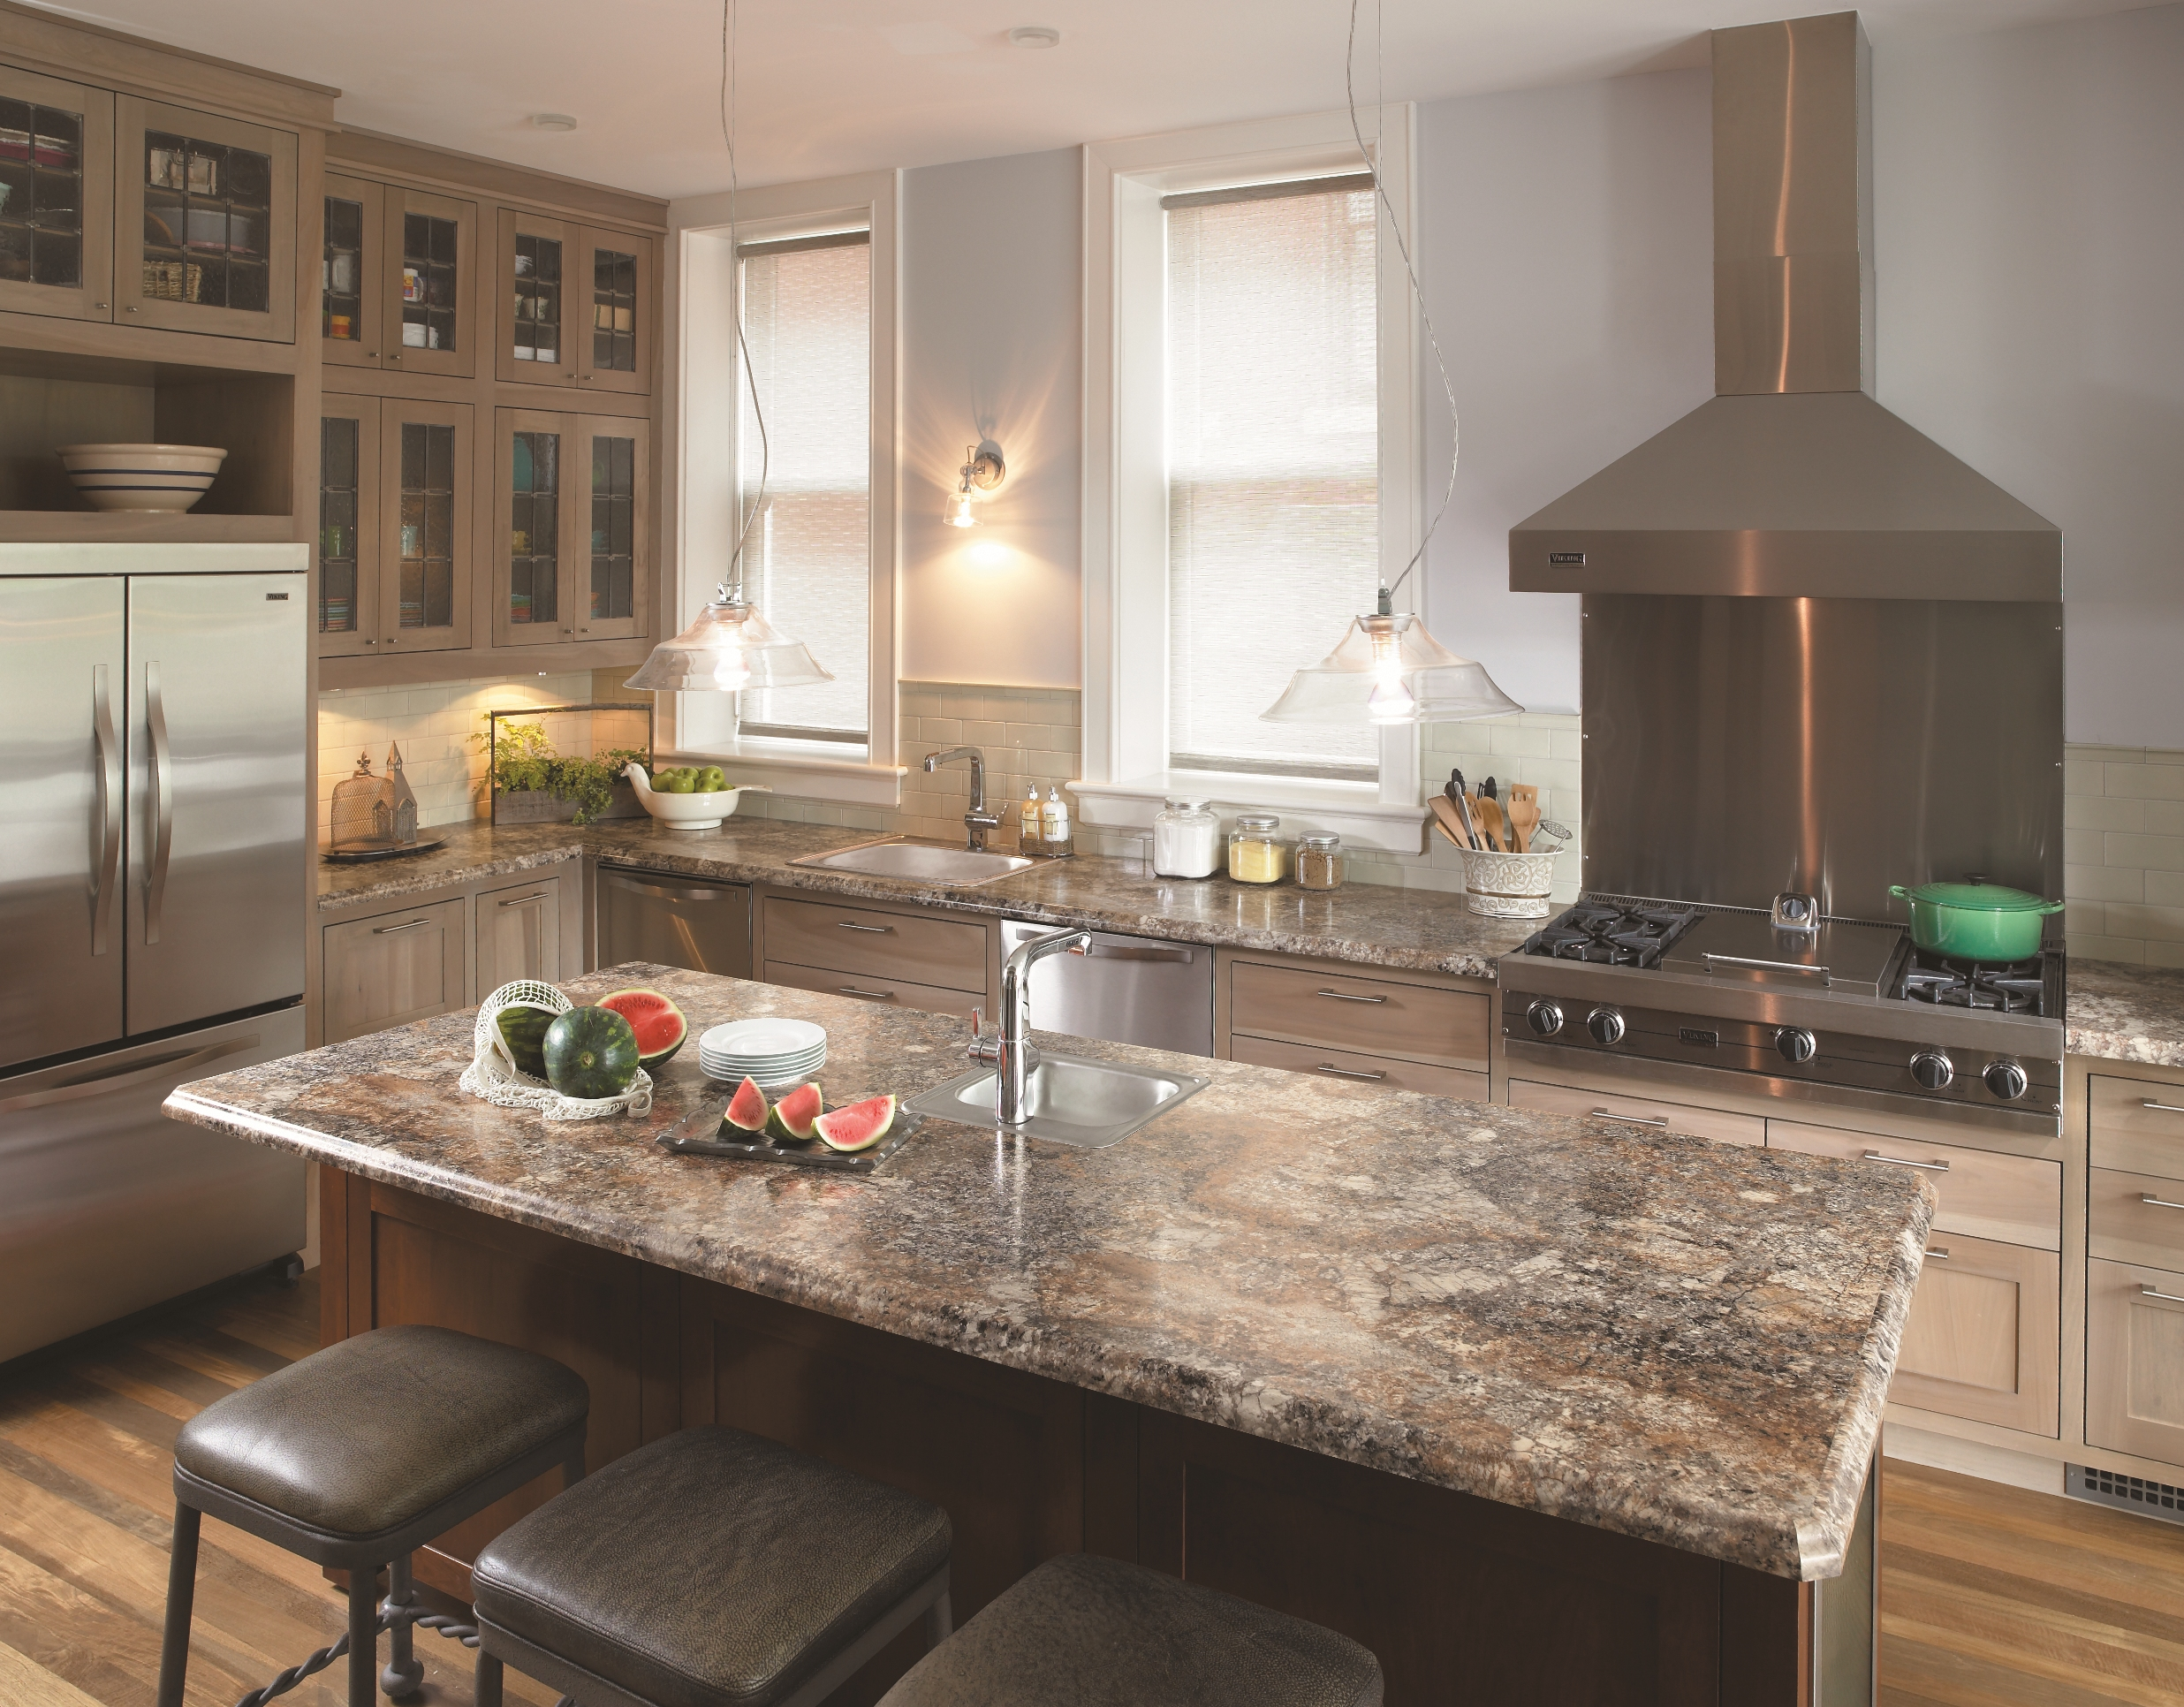 lovely ikea kitchen cabinets laminate defined countertops countertop wooden base of